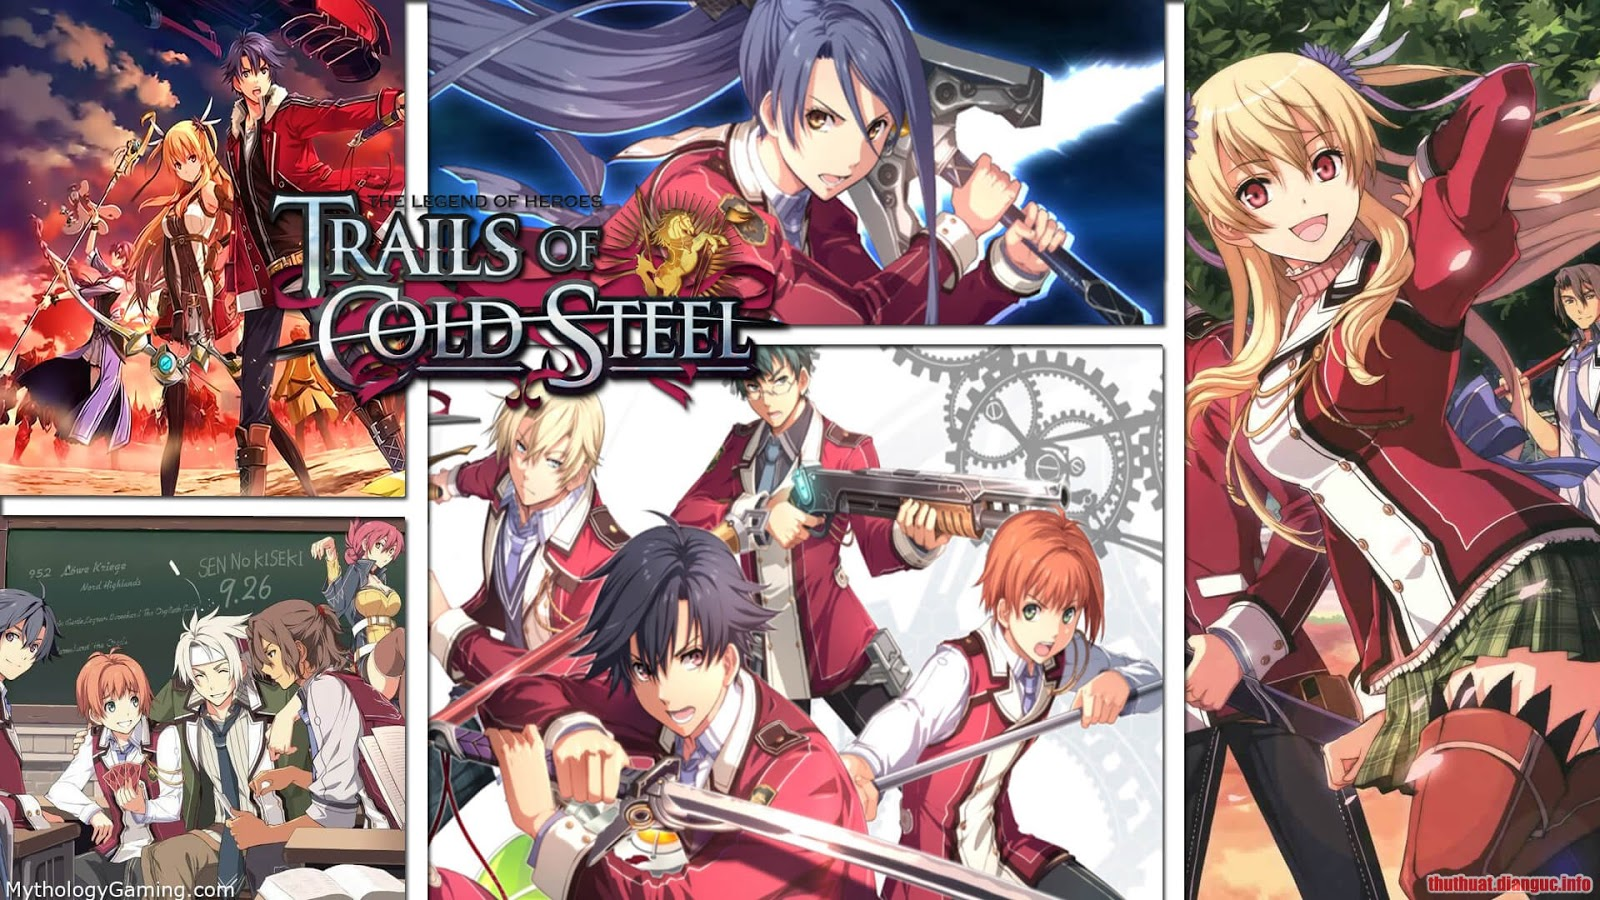 tie-mediumDownload Game The Legend of Heroes: Trails of Cold Steel Full Crack